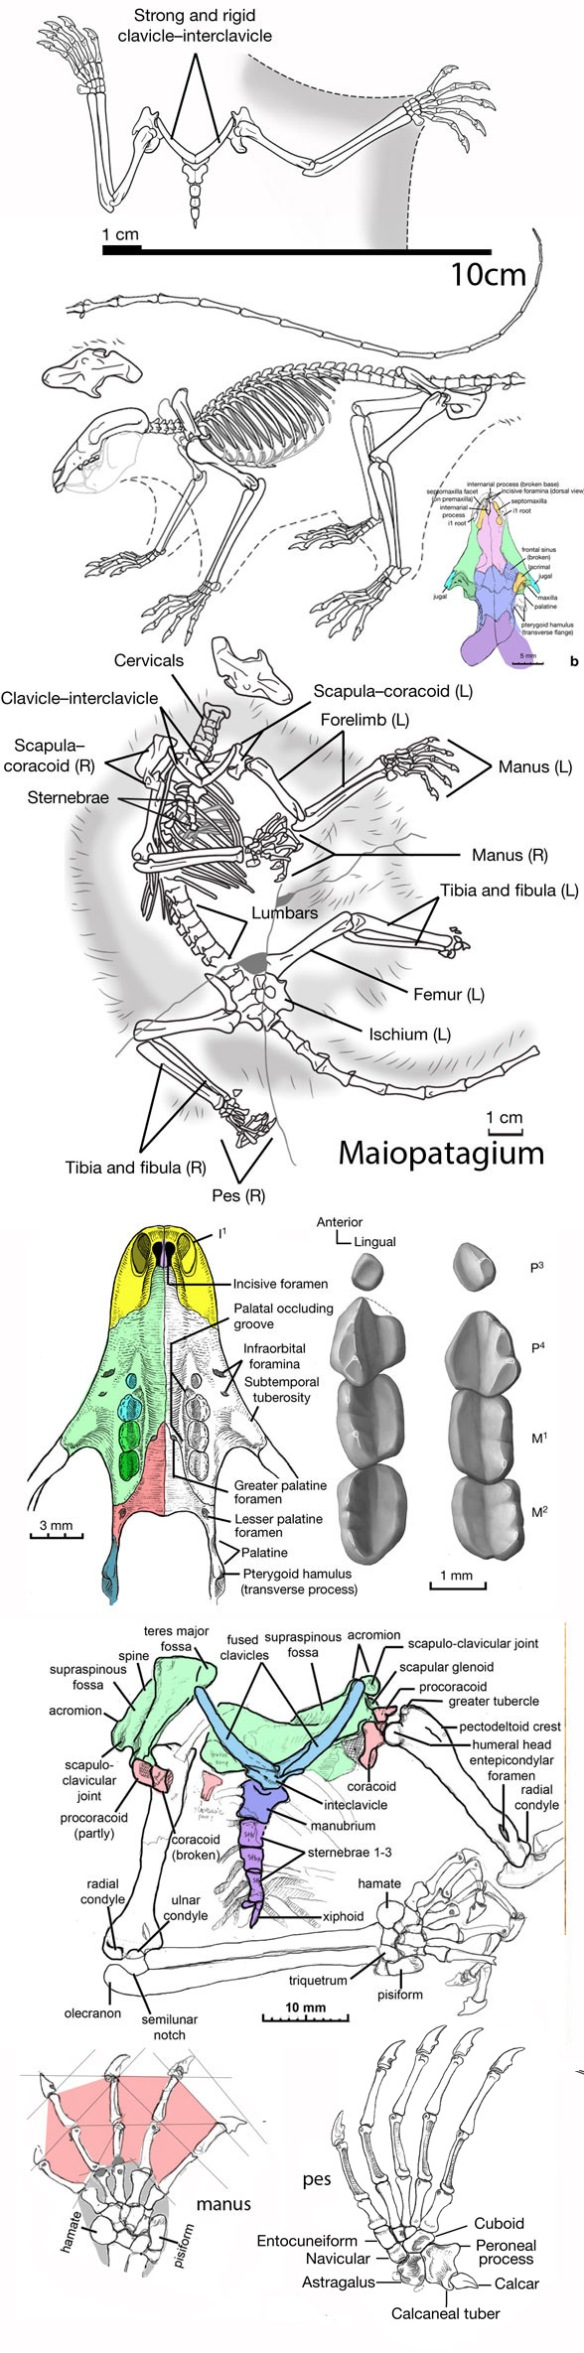 Figure 2. Maiopatagium images from Meng et al. with the addition of a braincase restored here.